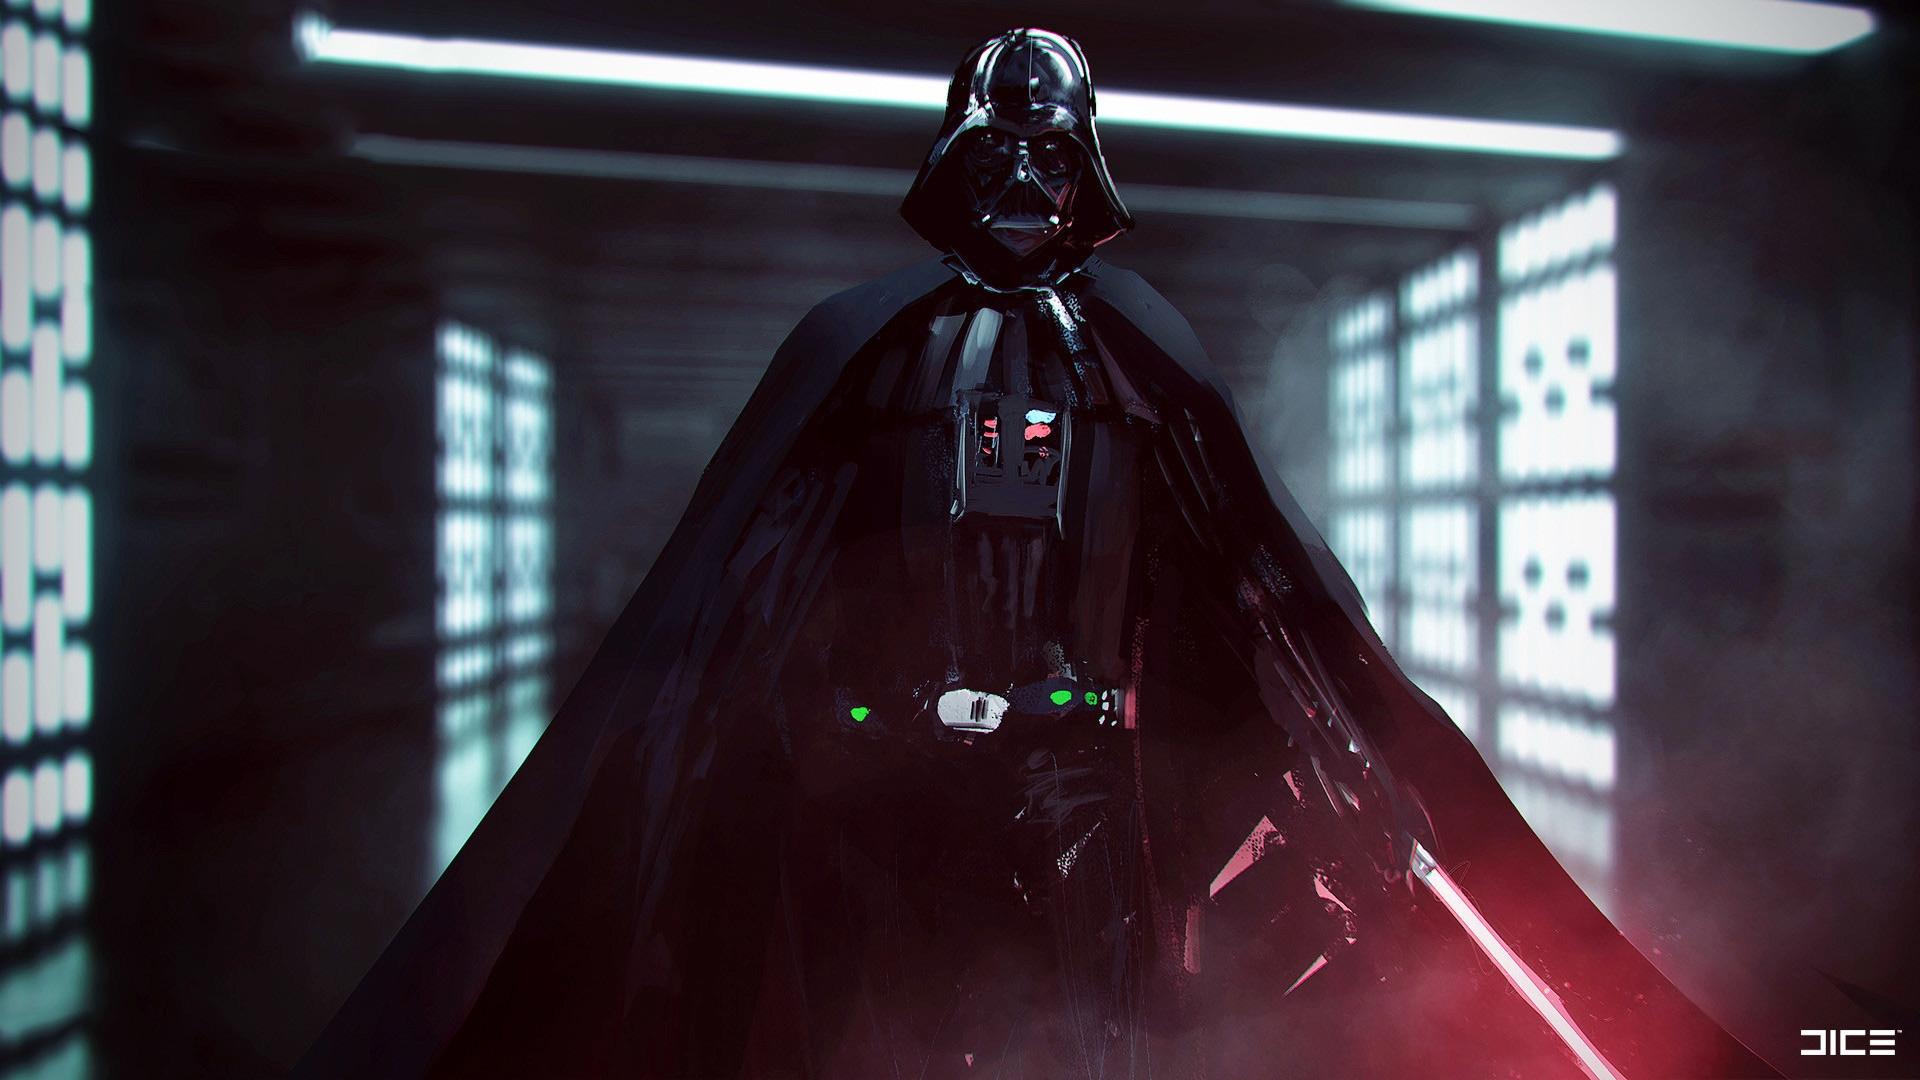 Darth Vader Star Wars Battlefront 2 Concept Art Hd Games